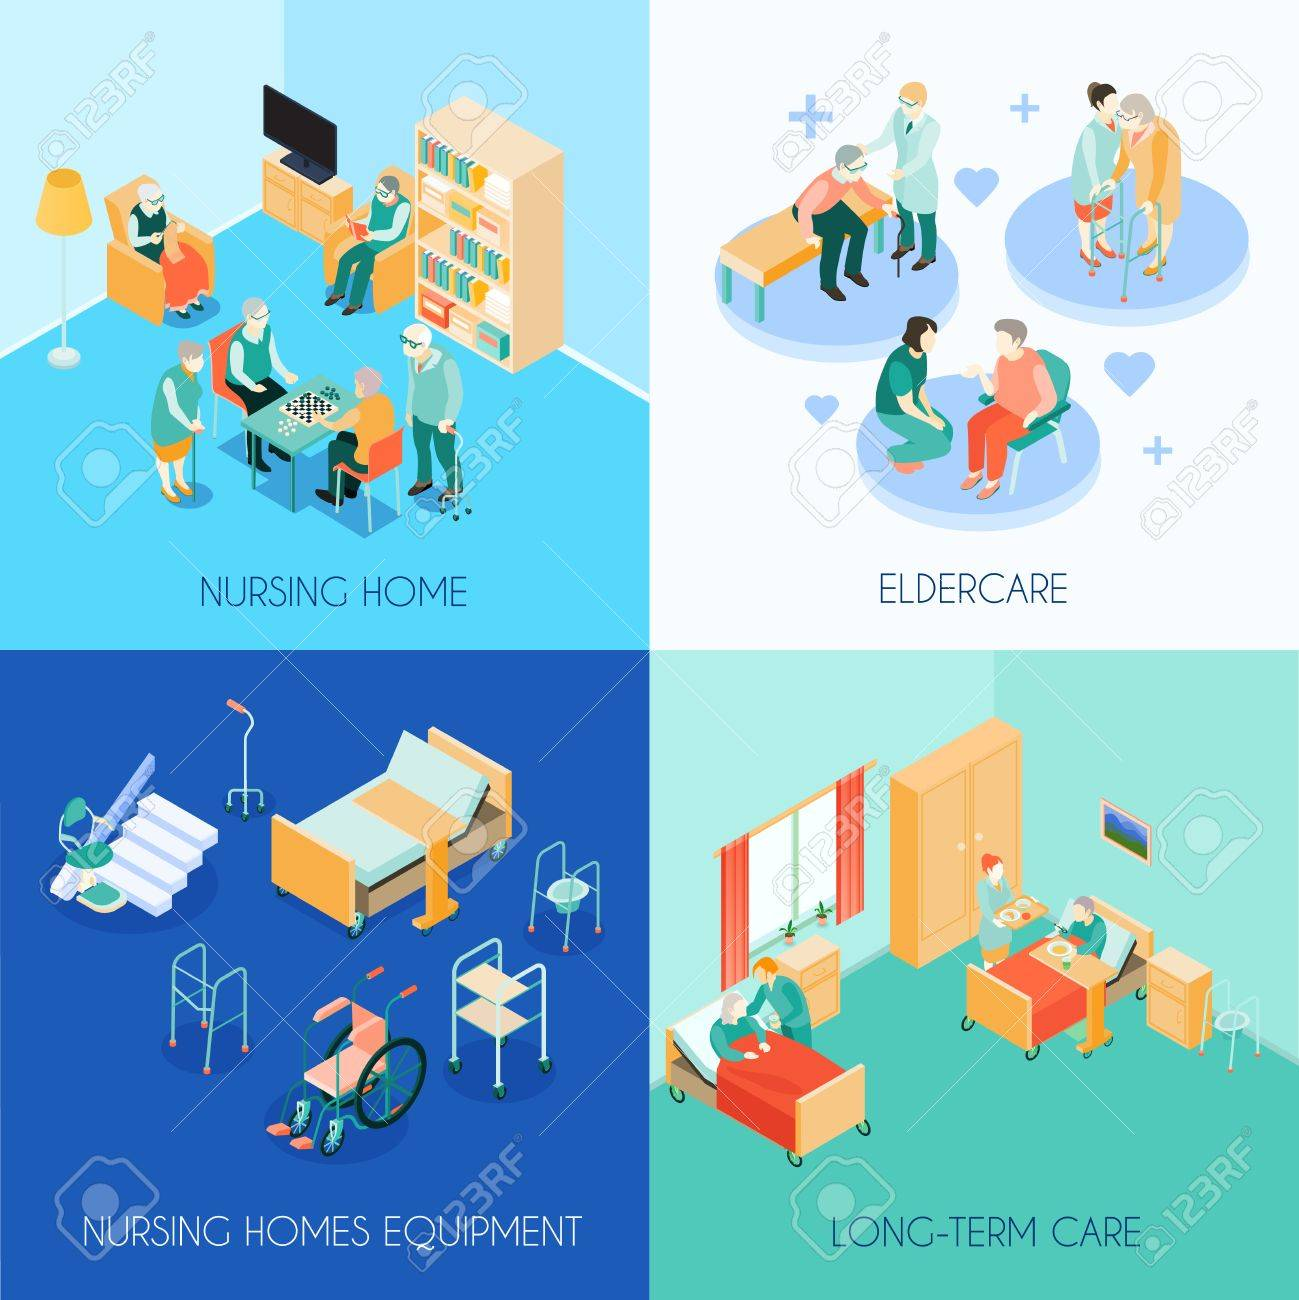 Nursing Home Eldercare Concept 4 Isometric Icons Square With